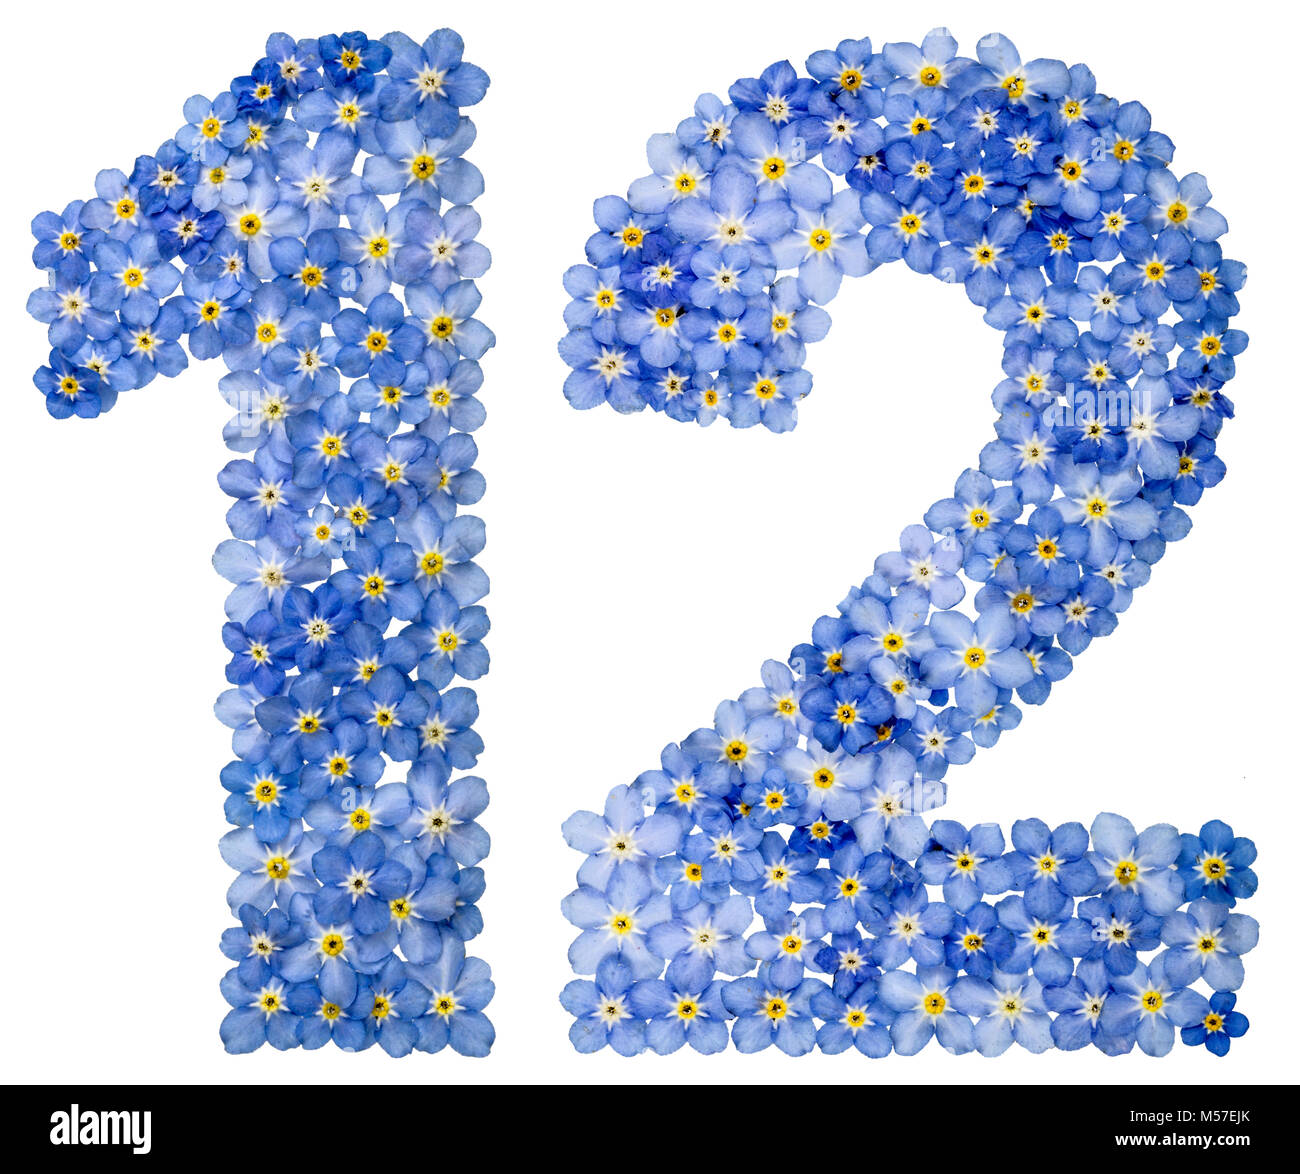 Arabic numeral 12, twelve, from blue forget-me-not flowers - Stock Image